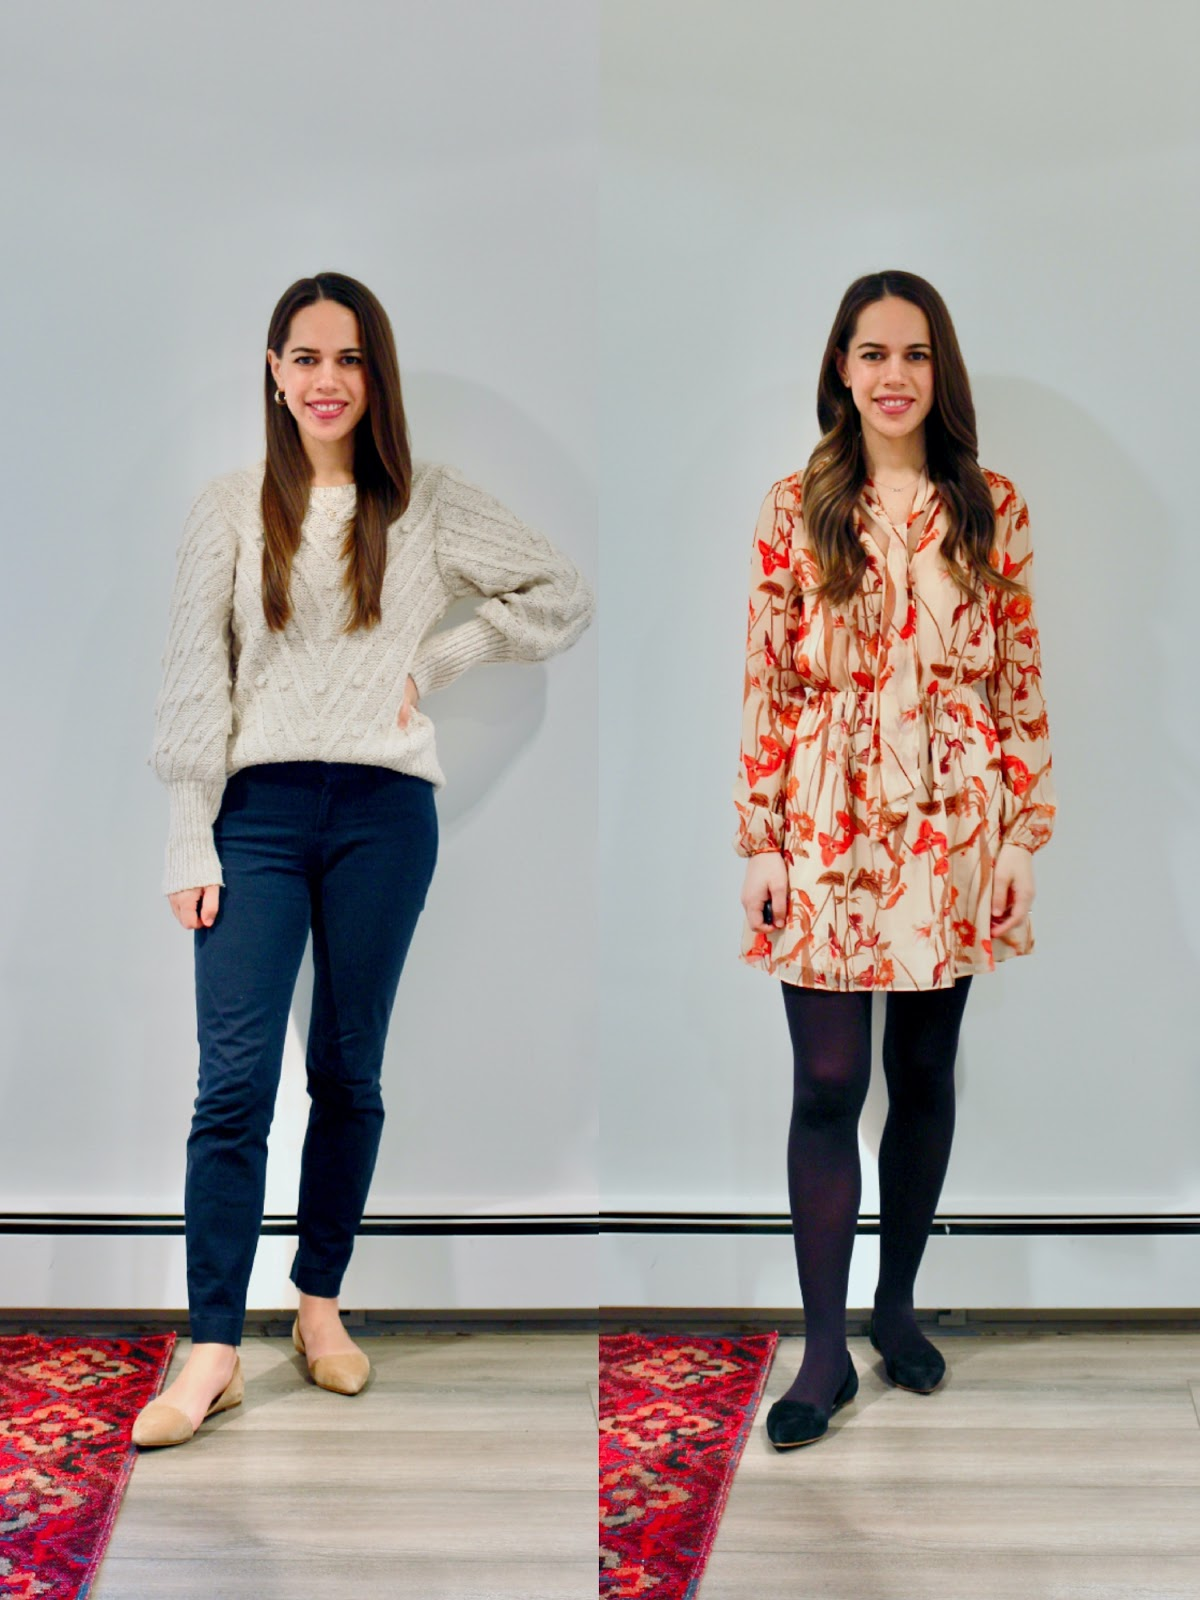 Jules in Flats - January Outfits Week Four (Business Casual Winter Workwear on a Budget)